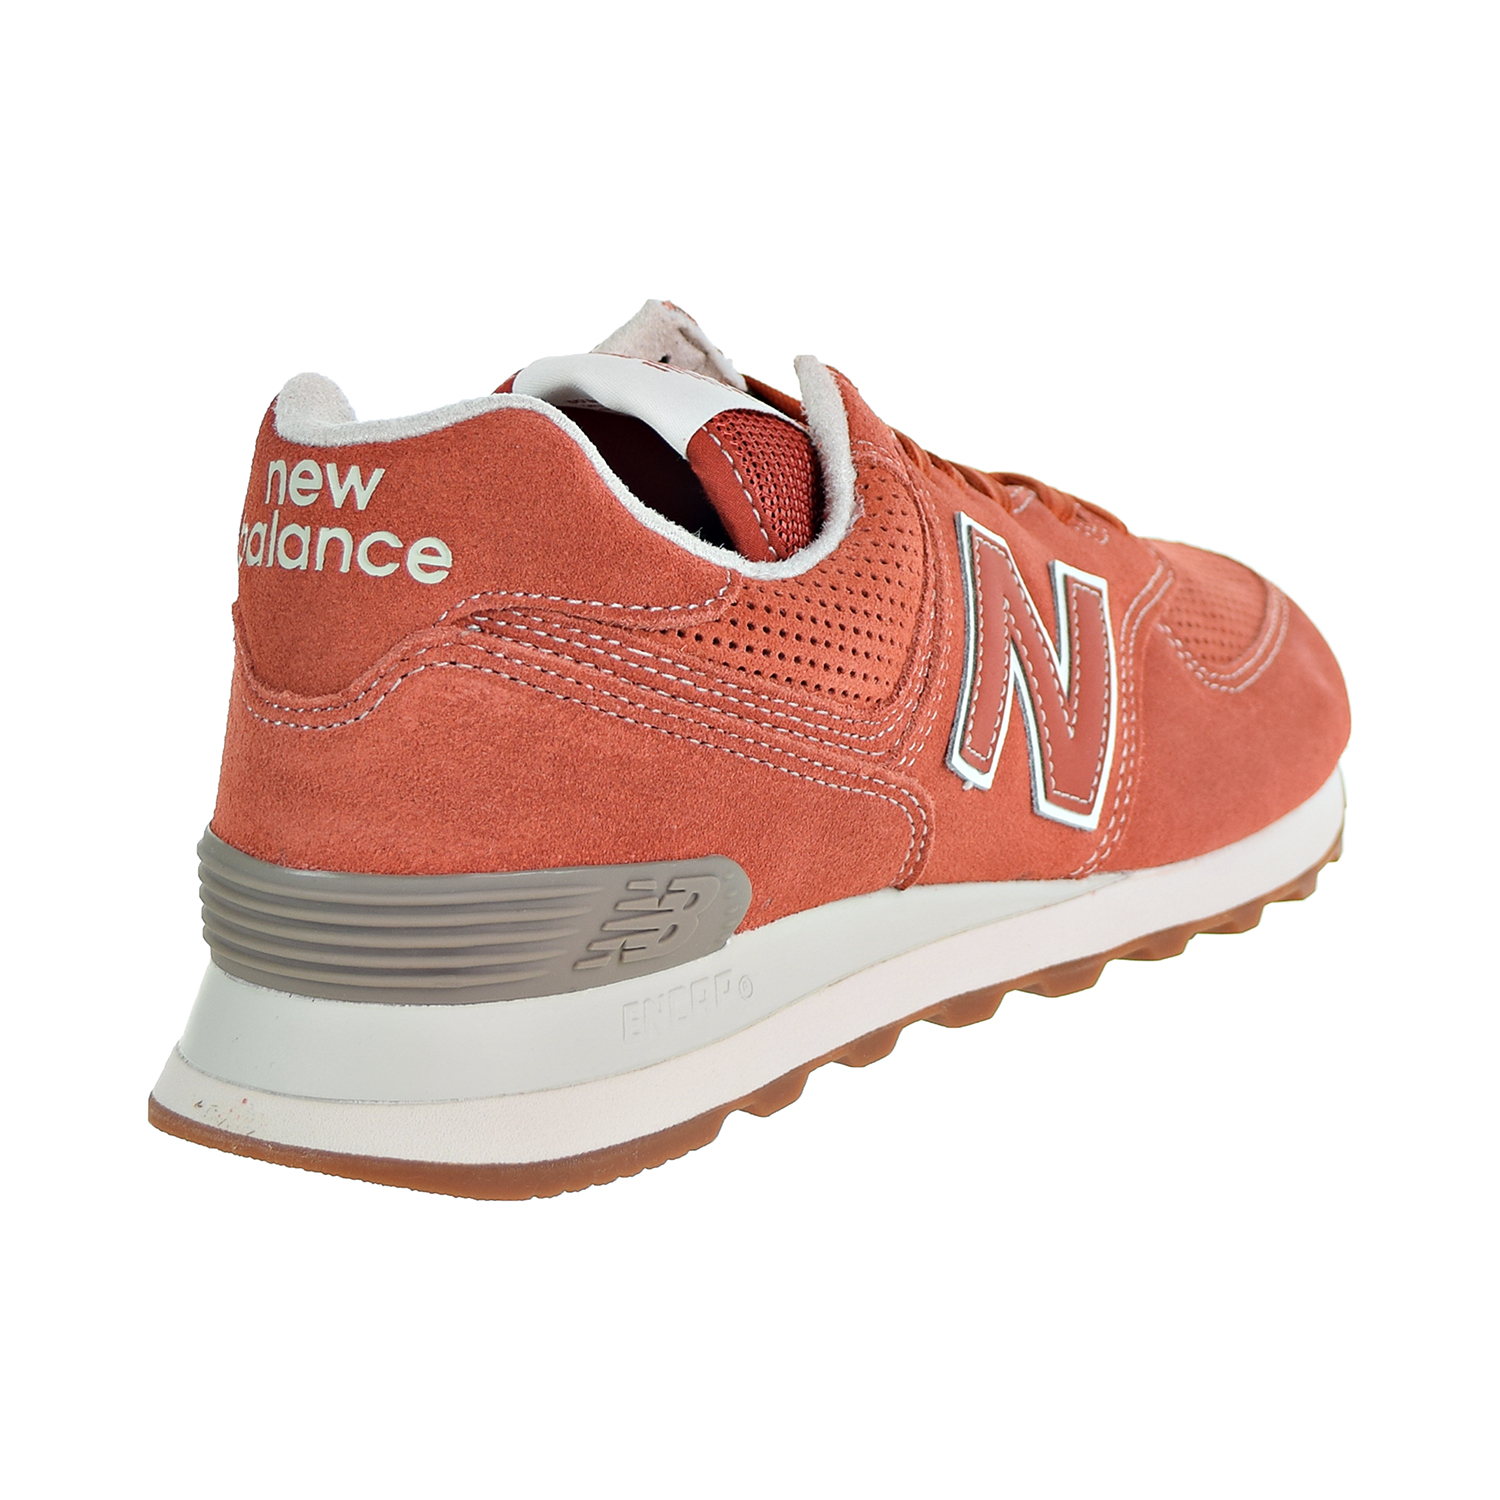 best service bb20e d5f01 Details about New Balance 574 Suede Men's Shoes Vintage Russet Orange  ML574-ESH